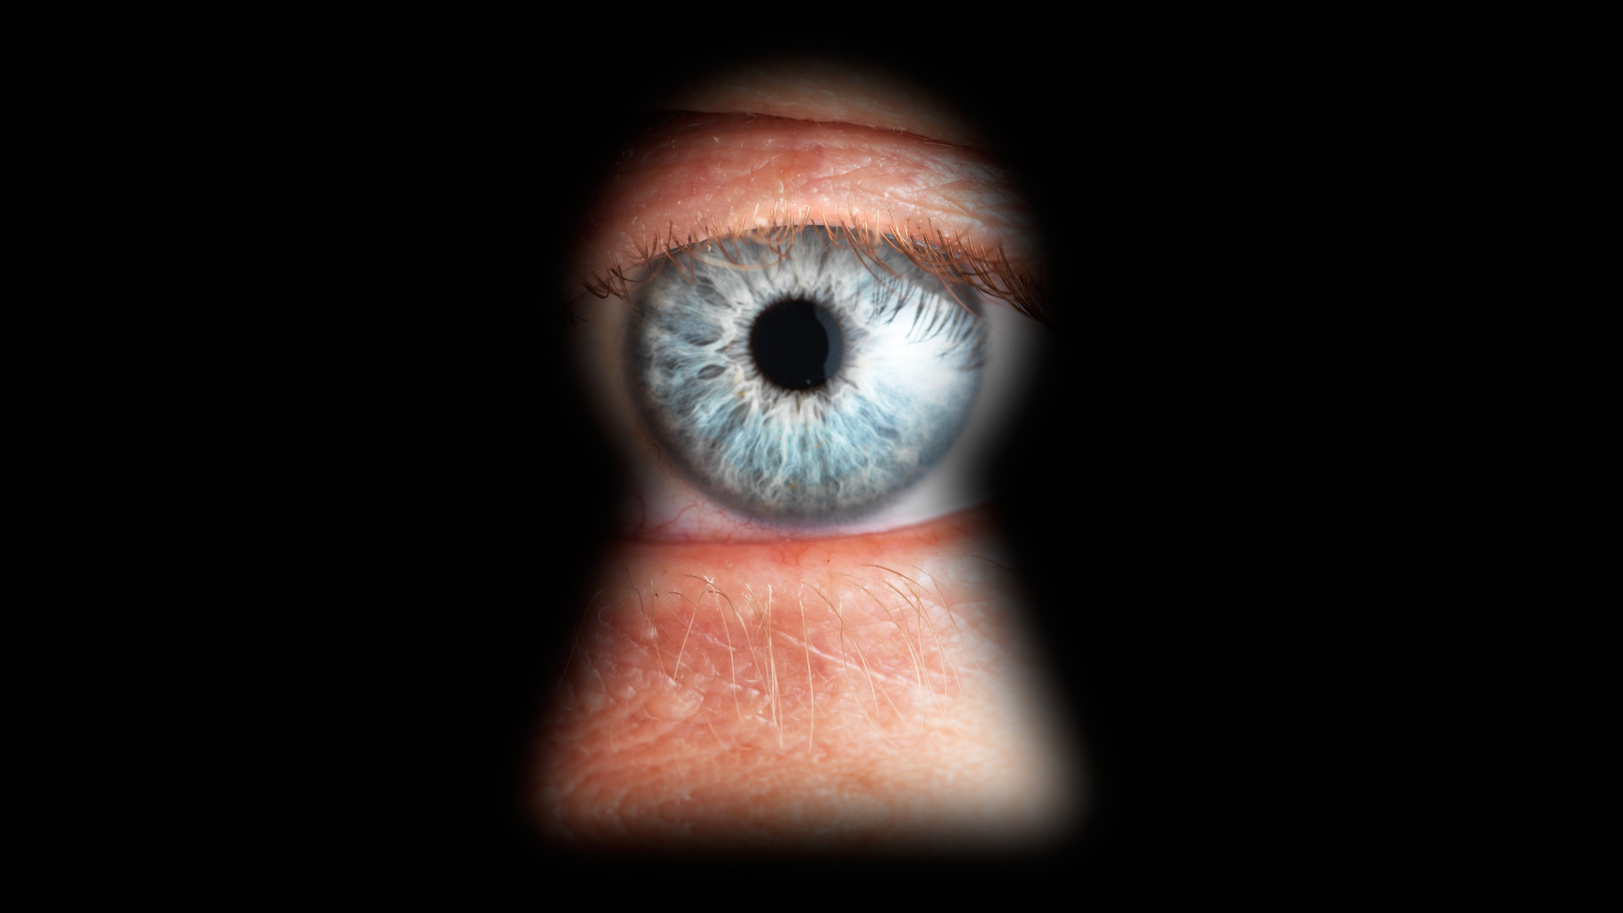 FBI Wants To Force Internet Companies To Make Their Sites Surveillance-Ready